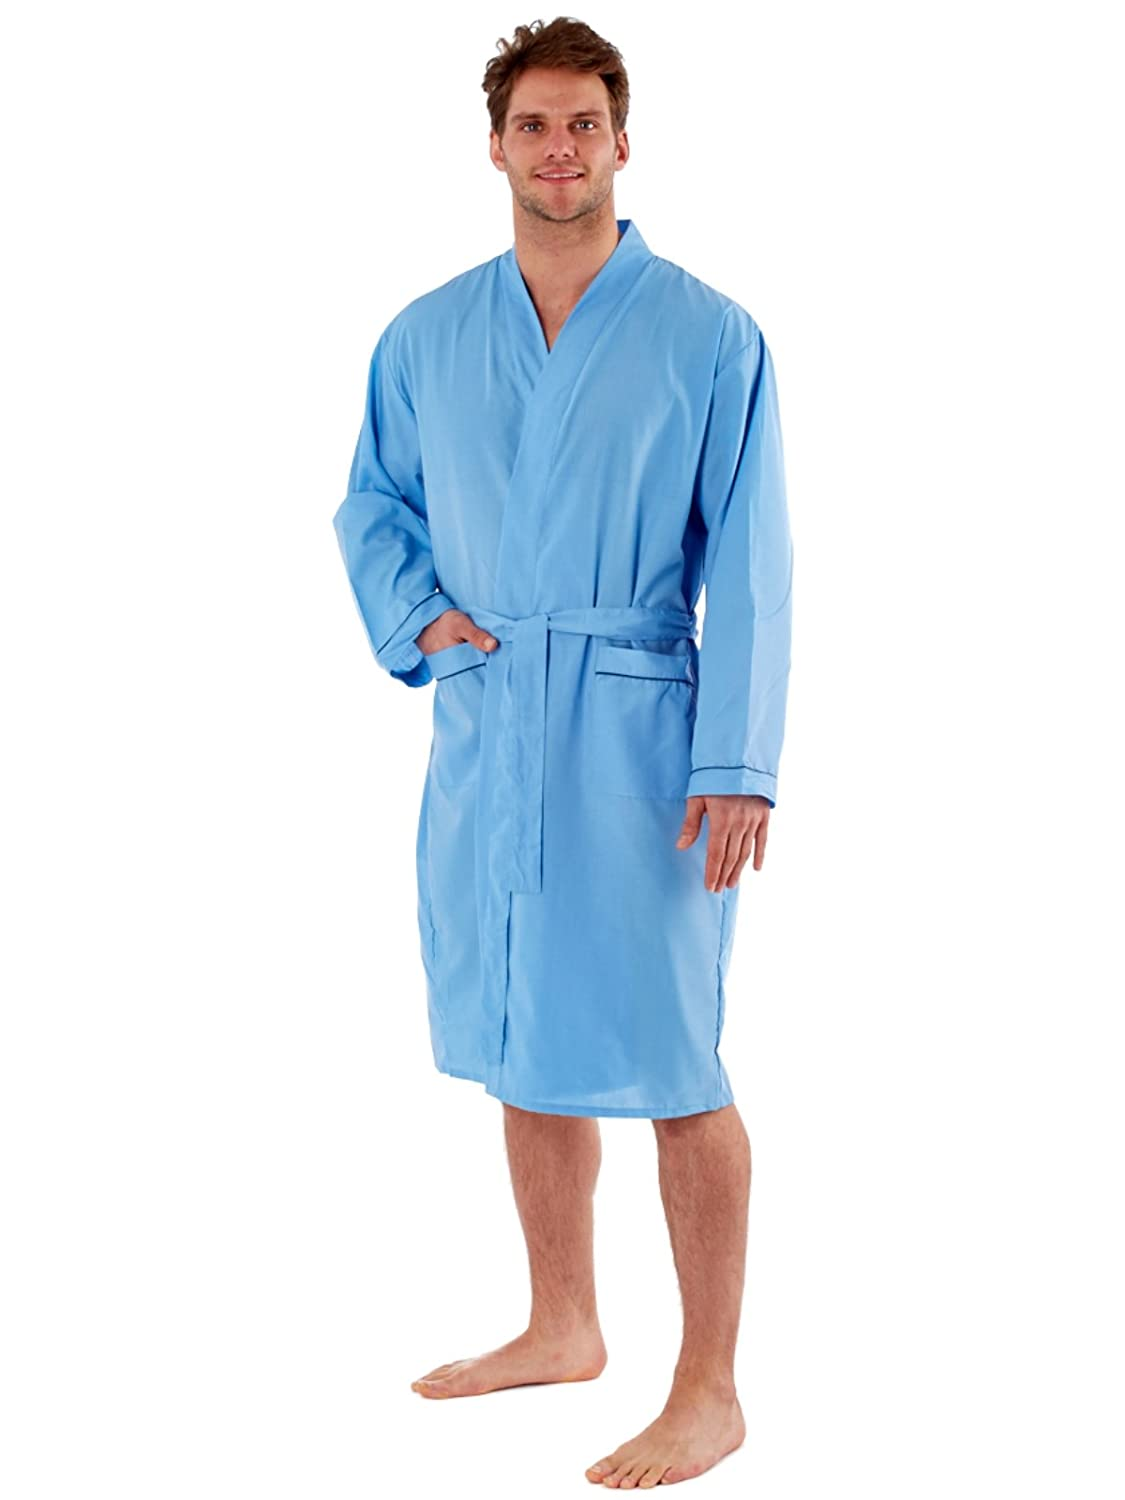 Harvey James Mens Dressing Gowns Robes Wrap Loungewear Lighweight Poly Cotton Gowns M - XXL